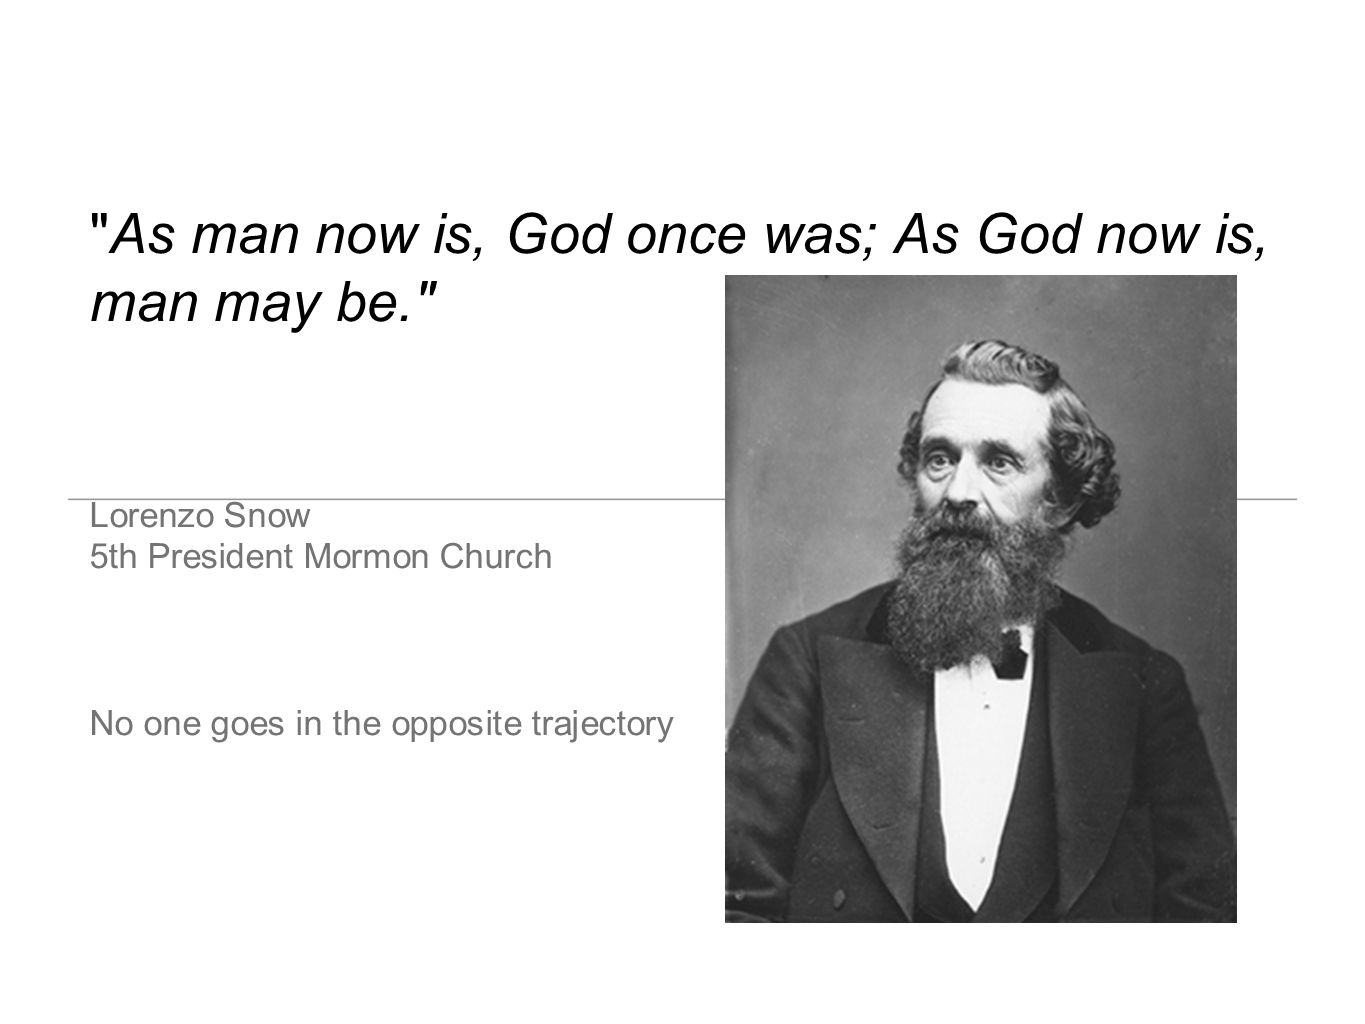 As man now is, God once was; As God now is, man may be.